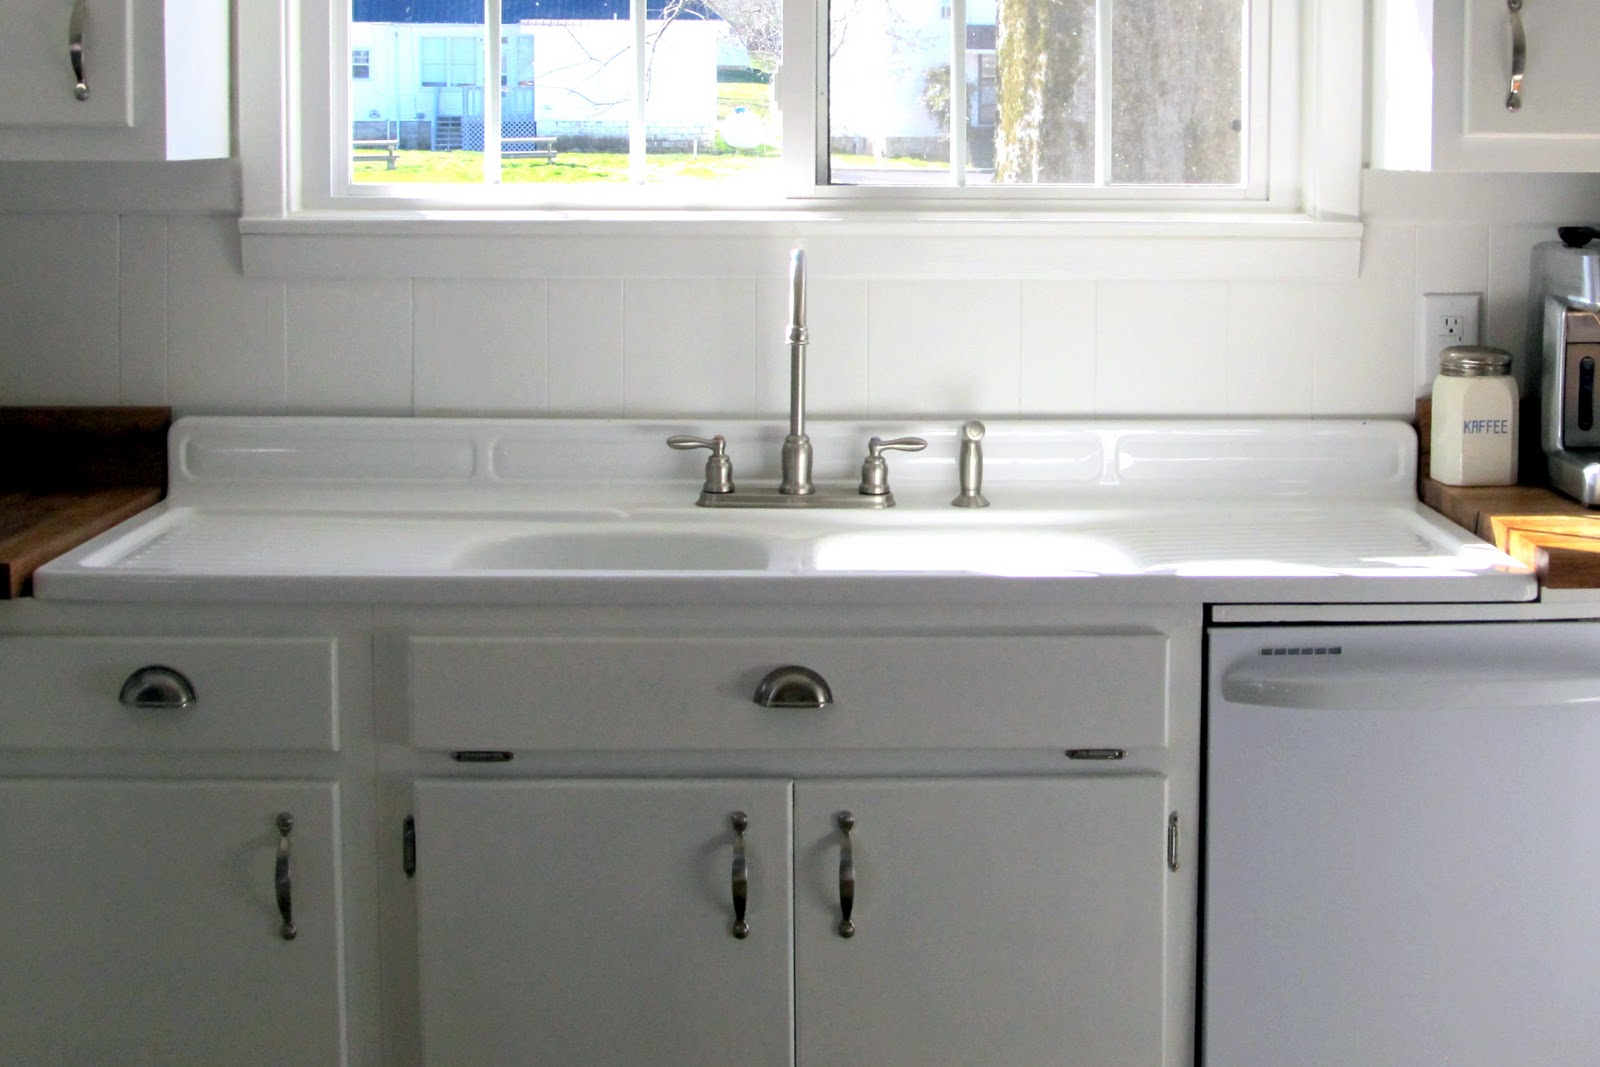 Keeping It Cozy A Farmhouse Sink